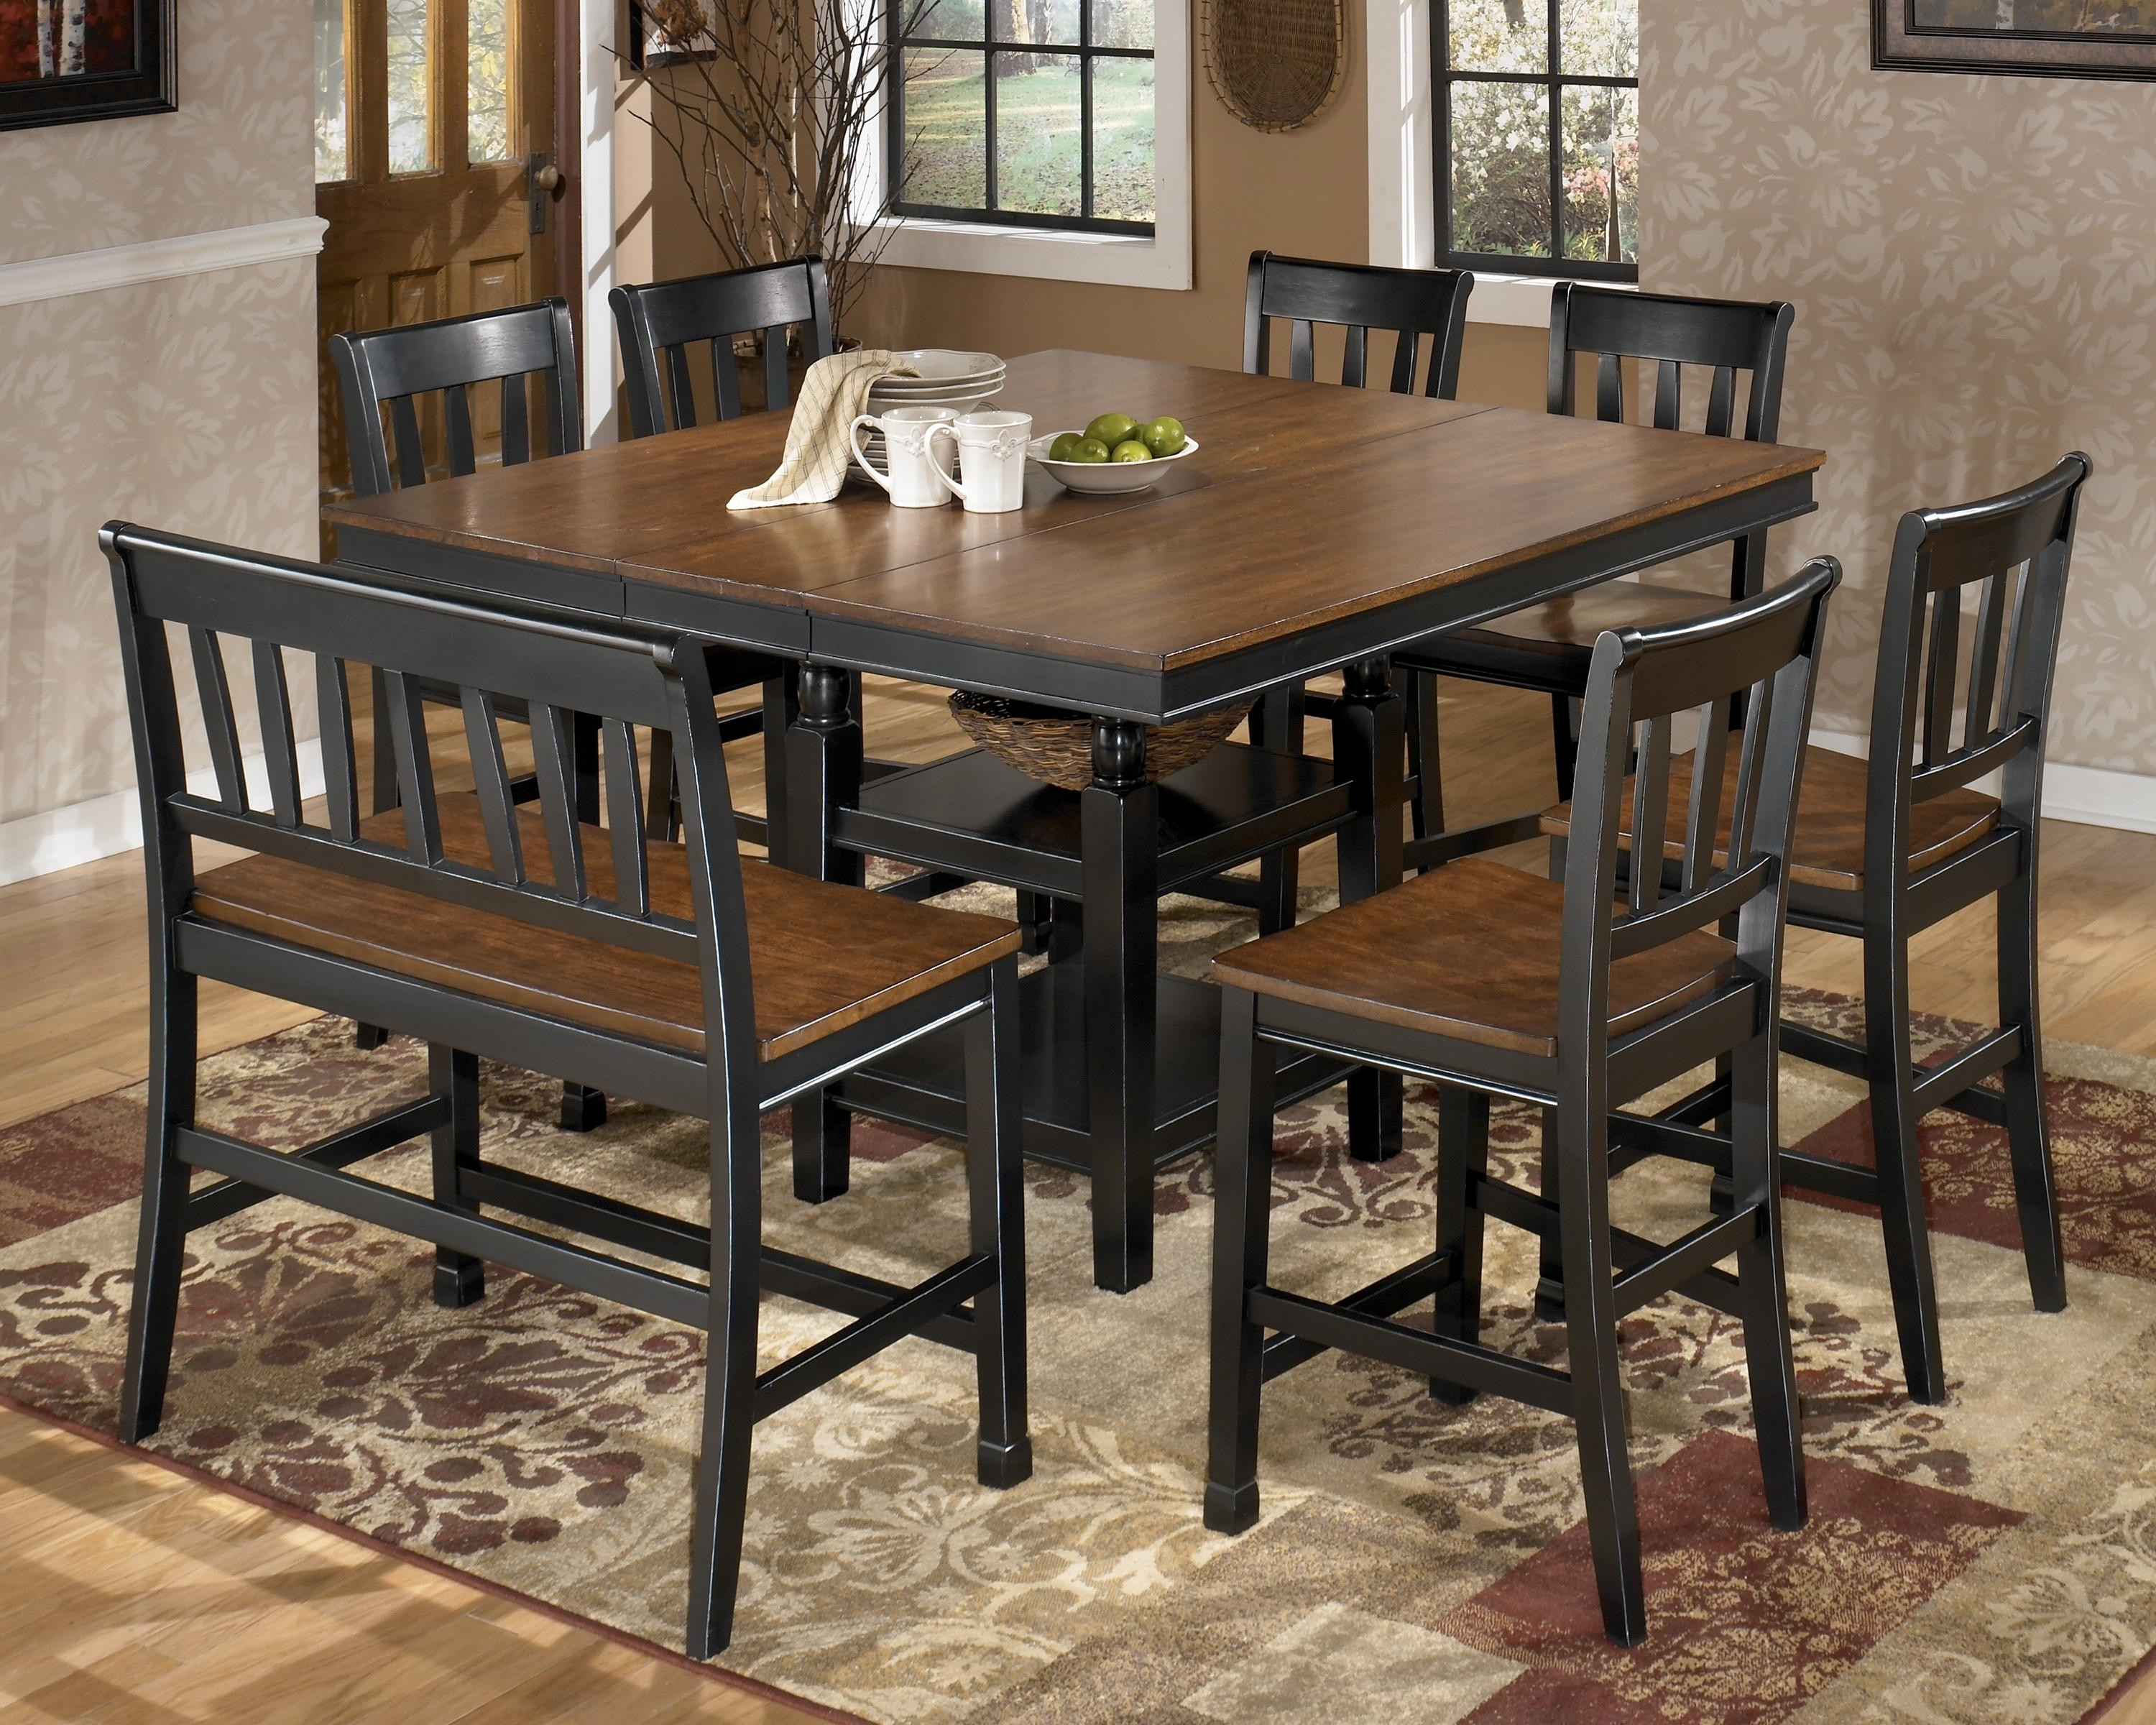 Solid Oak Dining Room Table And 8 Chairs New Ashley Counter Height Inside 2017 Dining Tables With 8 Chairs (View 23 of 25)